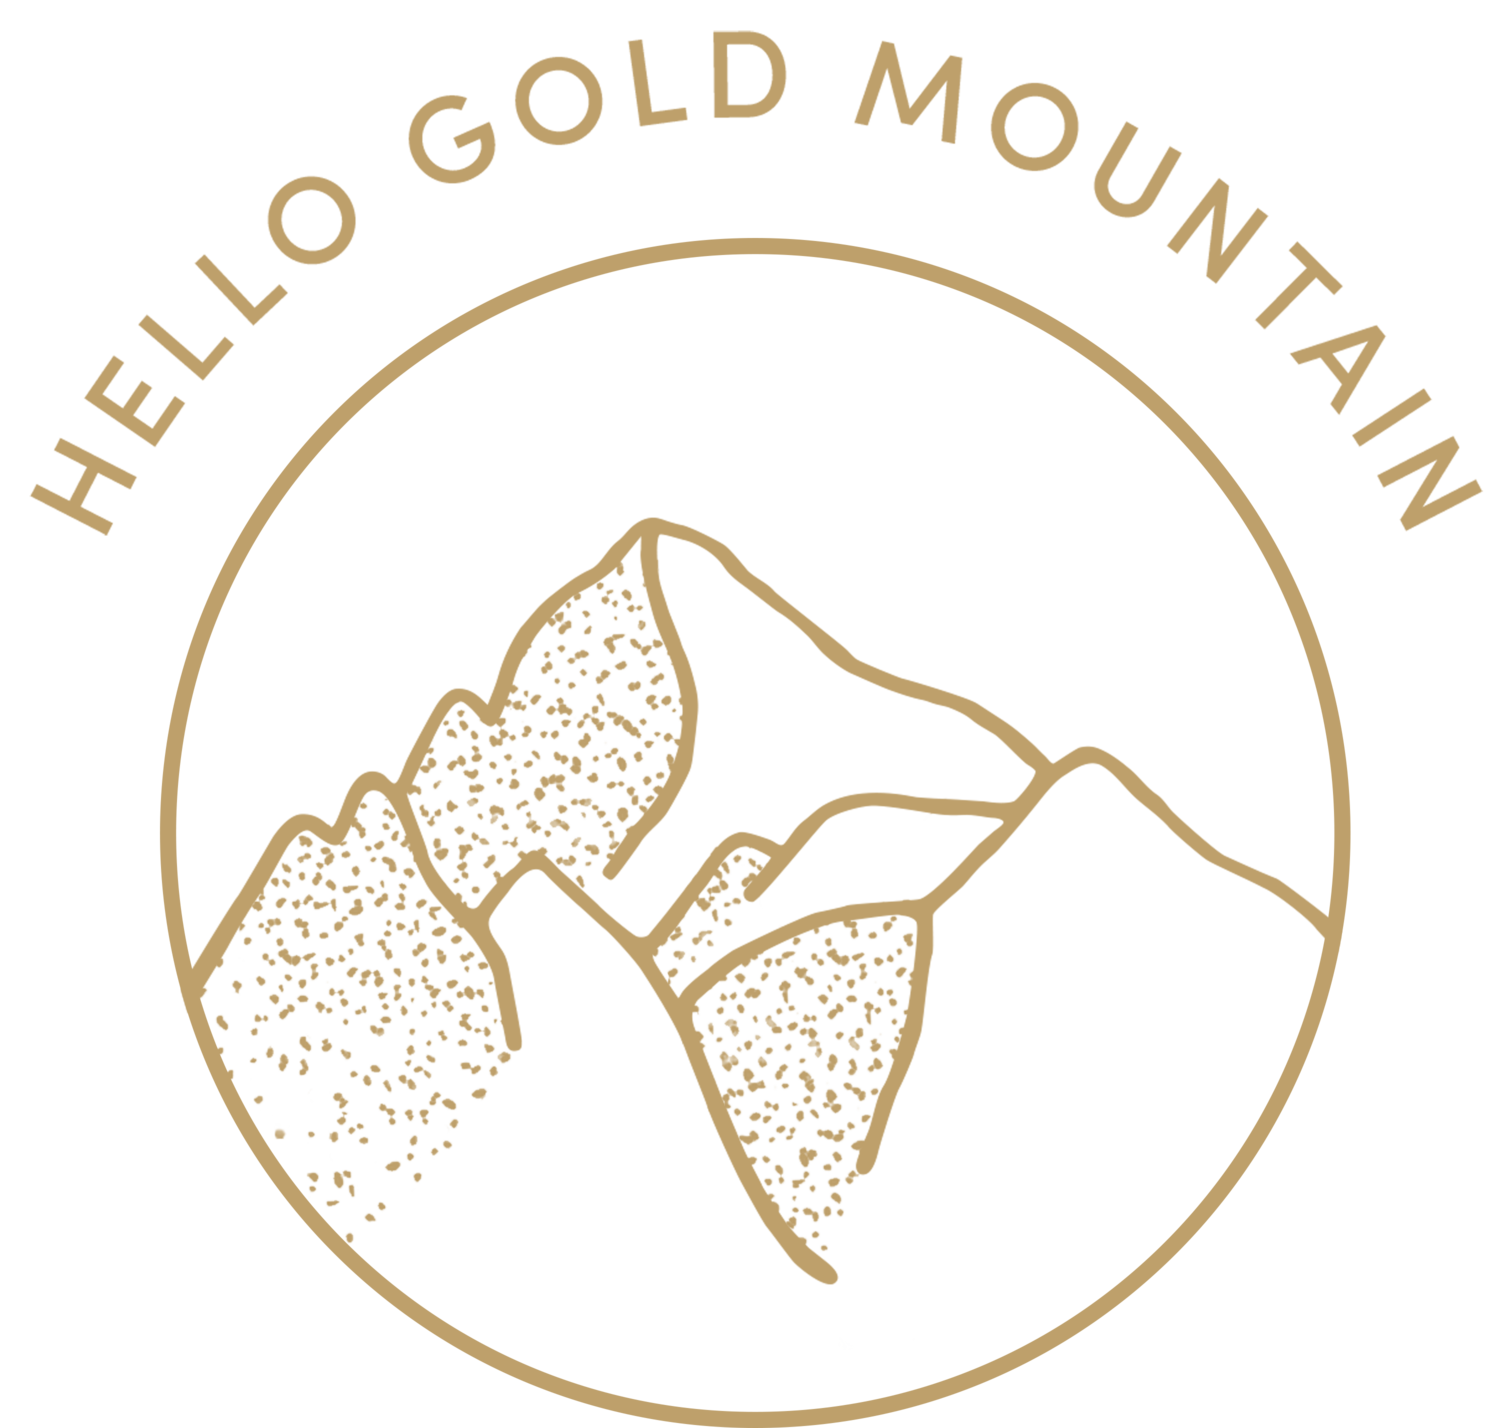 Hello Gold Mountain